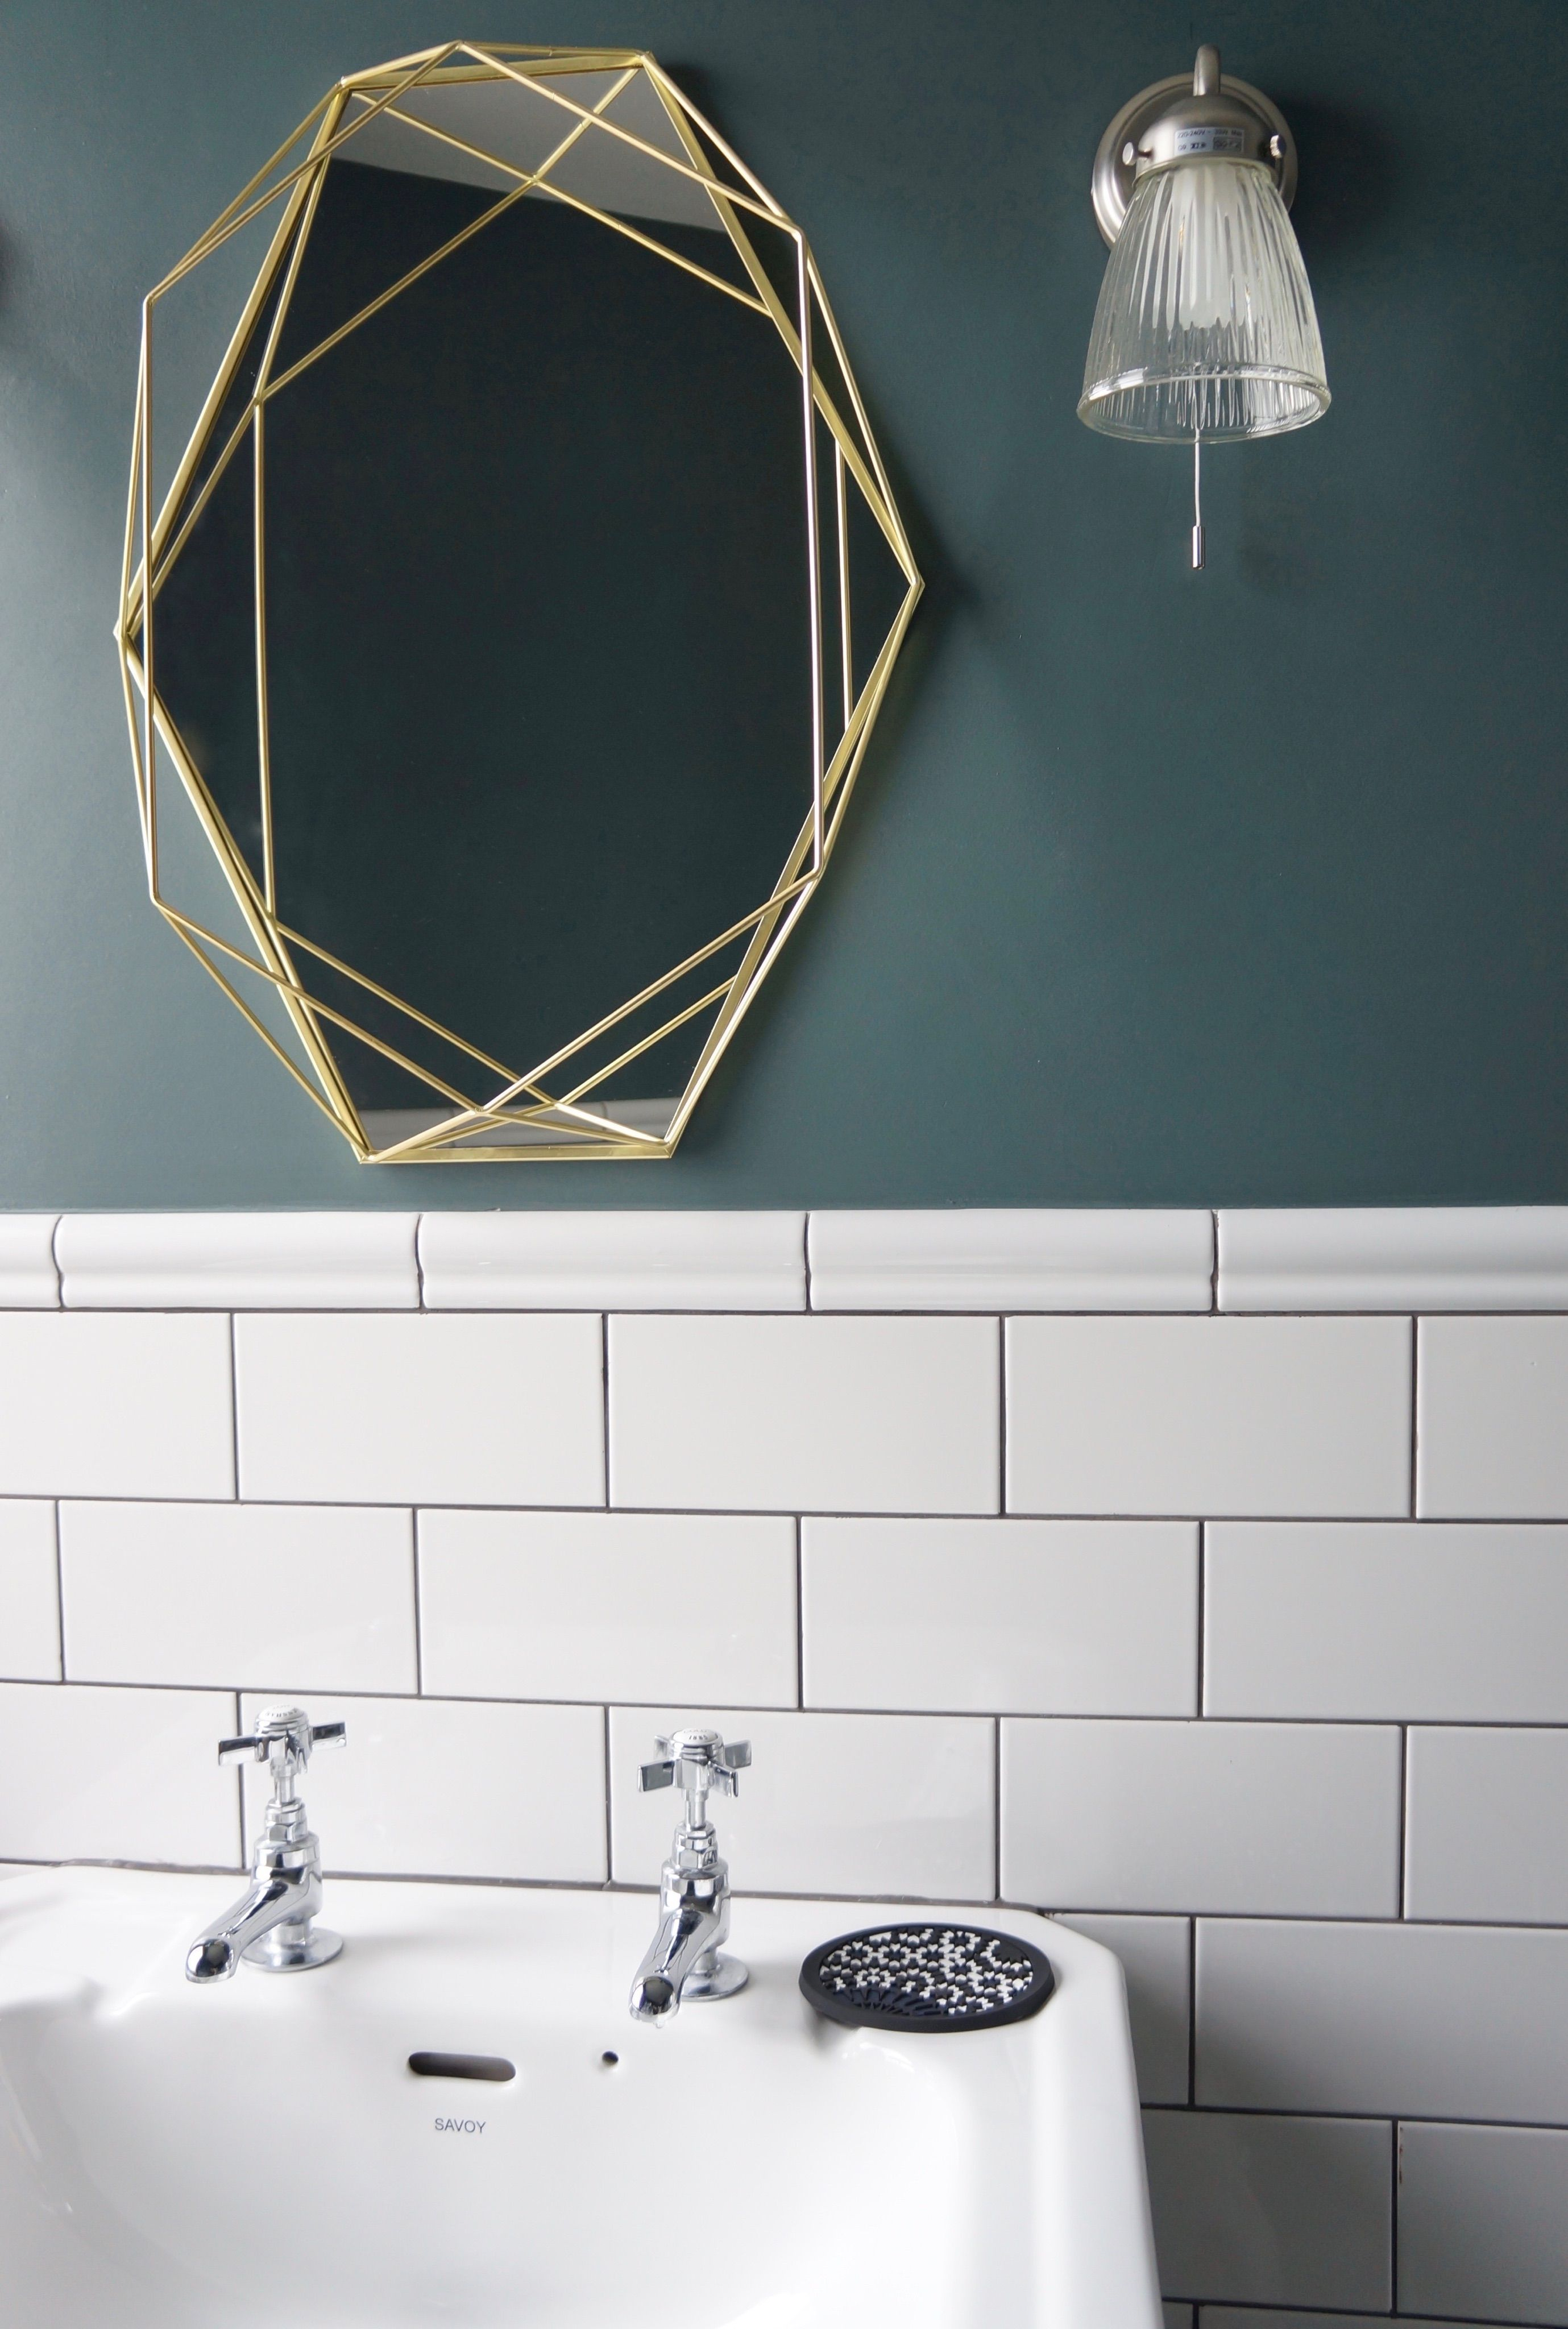 We have selected some stunning mirrors to bathroom decor. You can ...